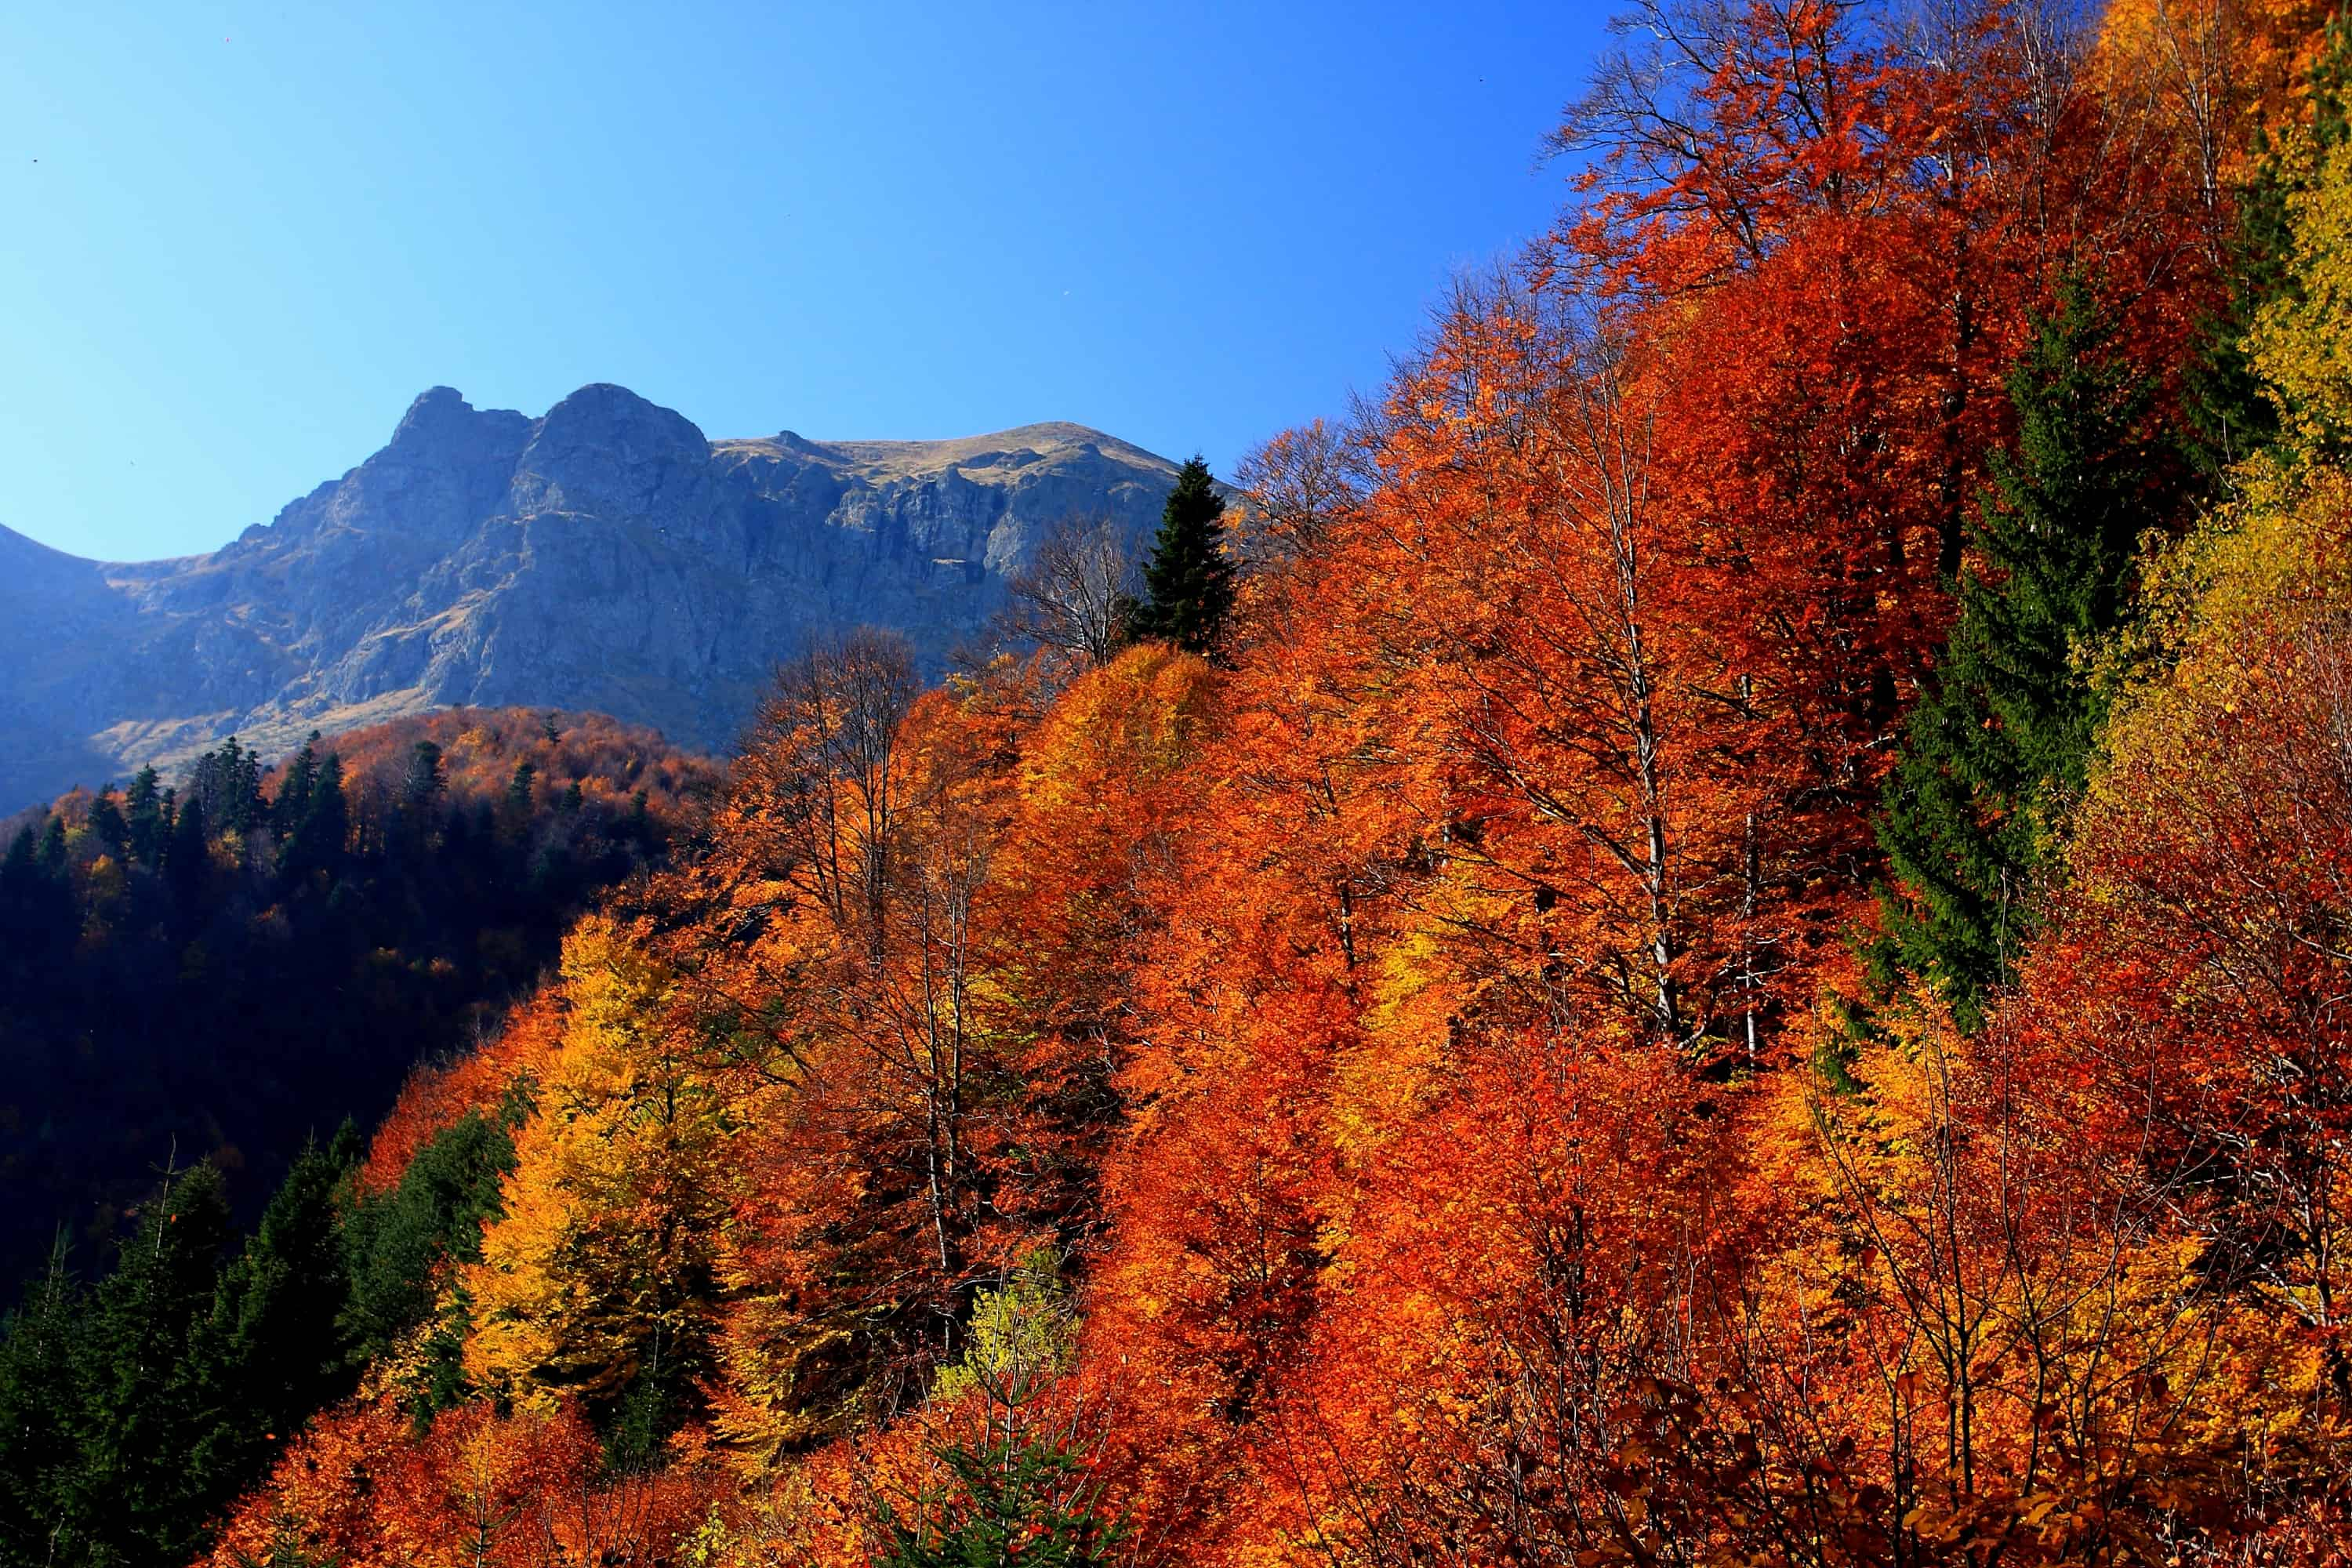 Autum in the Tazha park section - photo: Central Balkan National Park